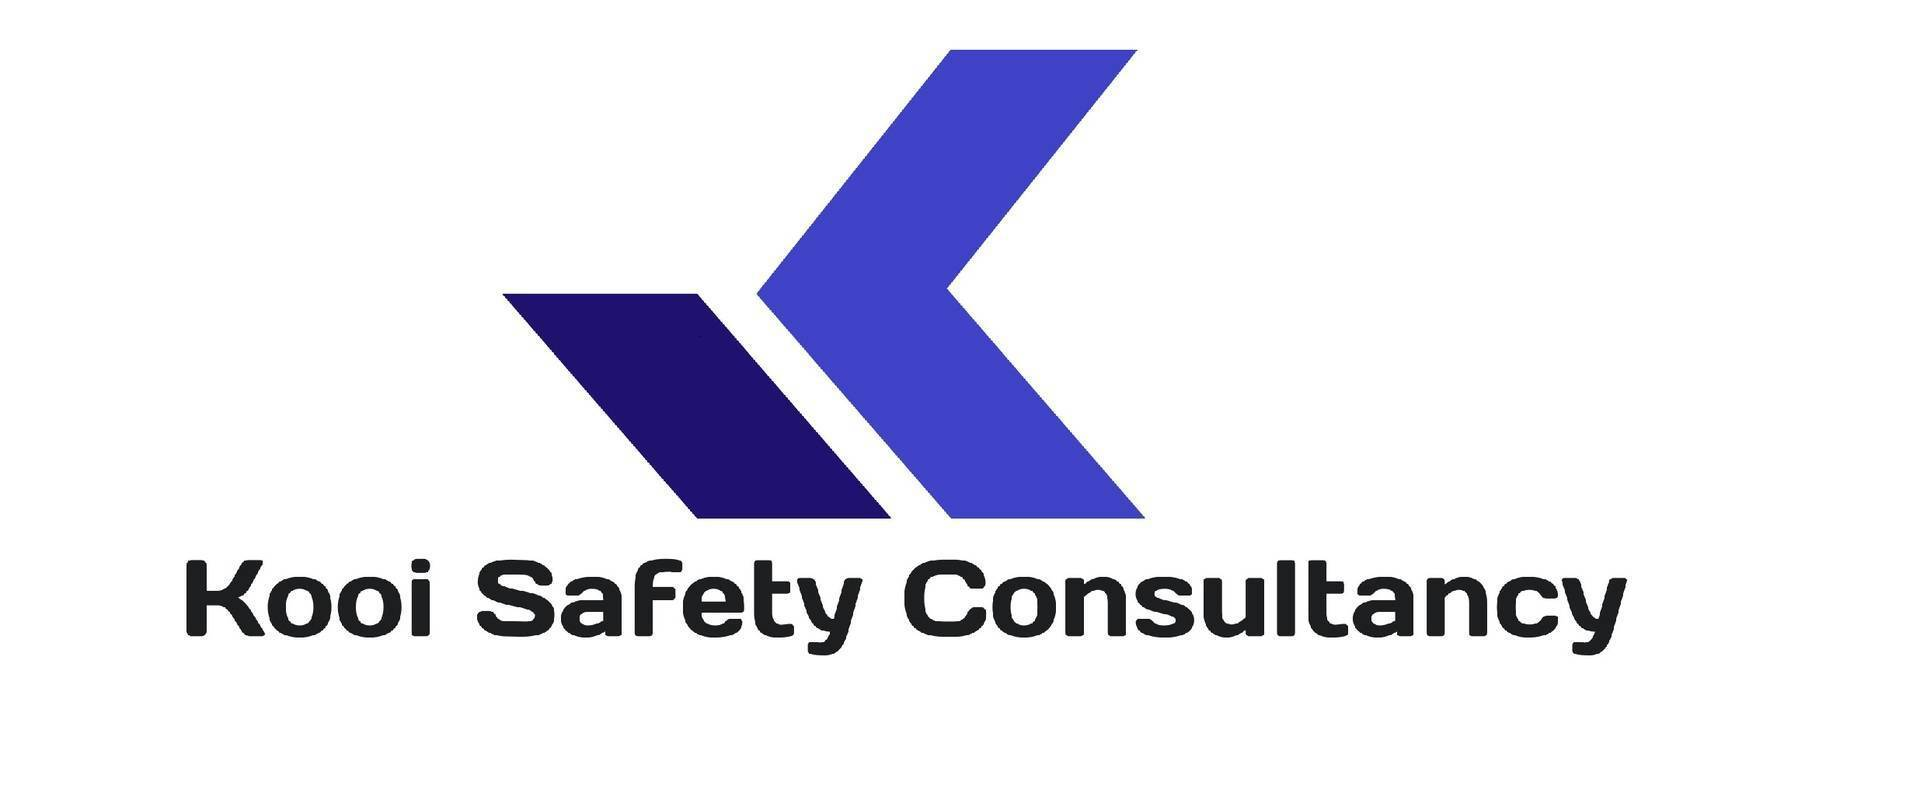 Kooi Safety Consultancy - logo